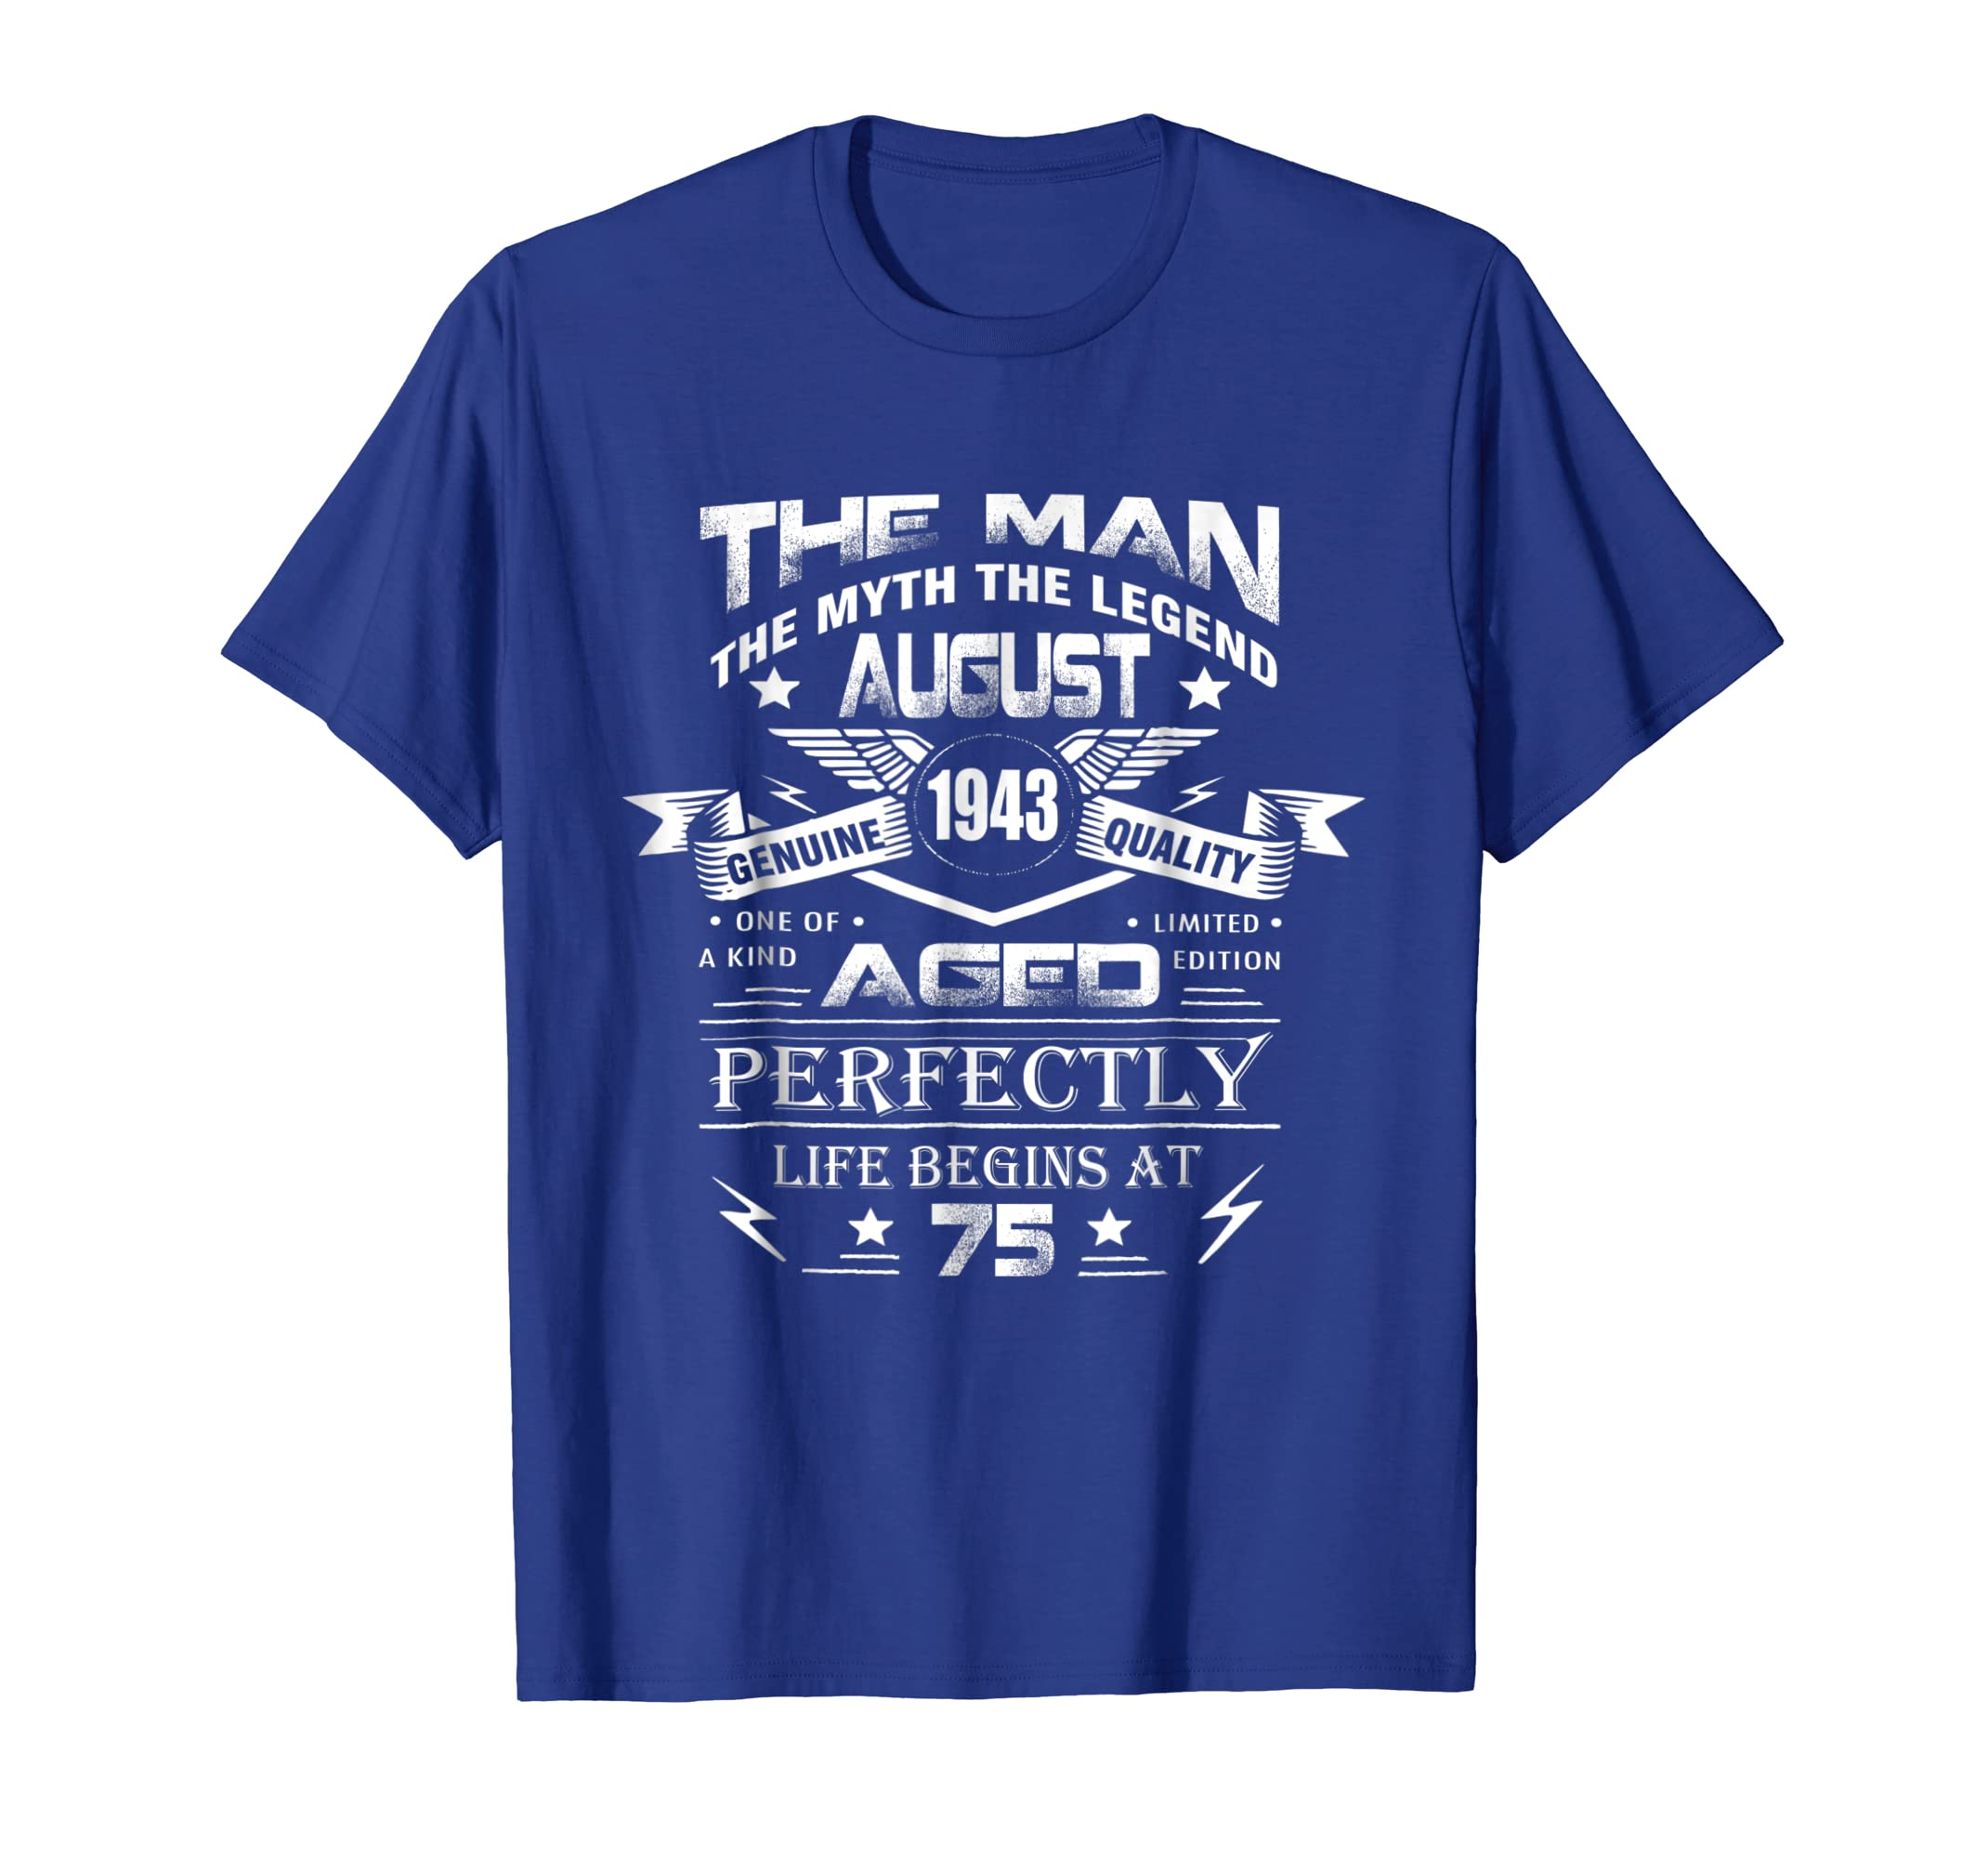 August 1943 Shirt 75th Birthday Gift Idea For Men And Women